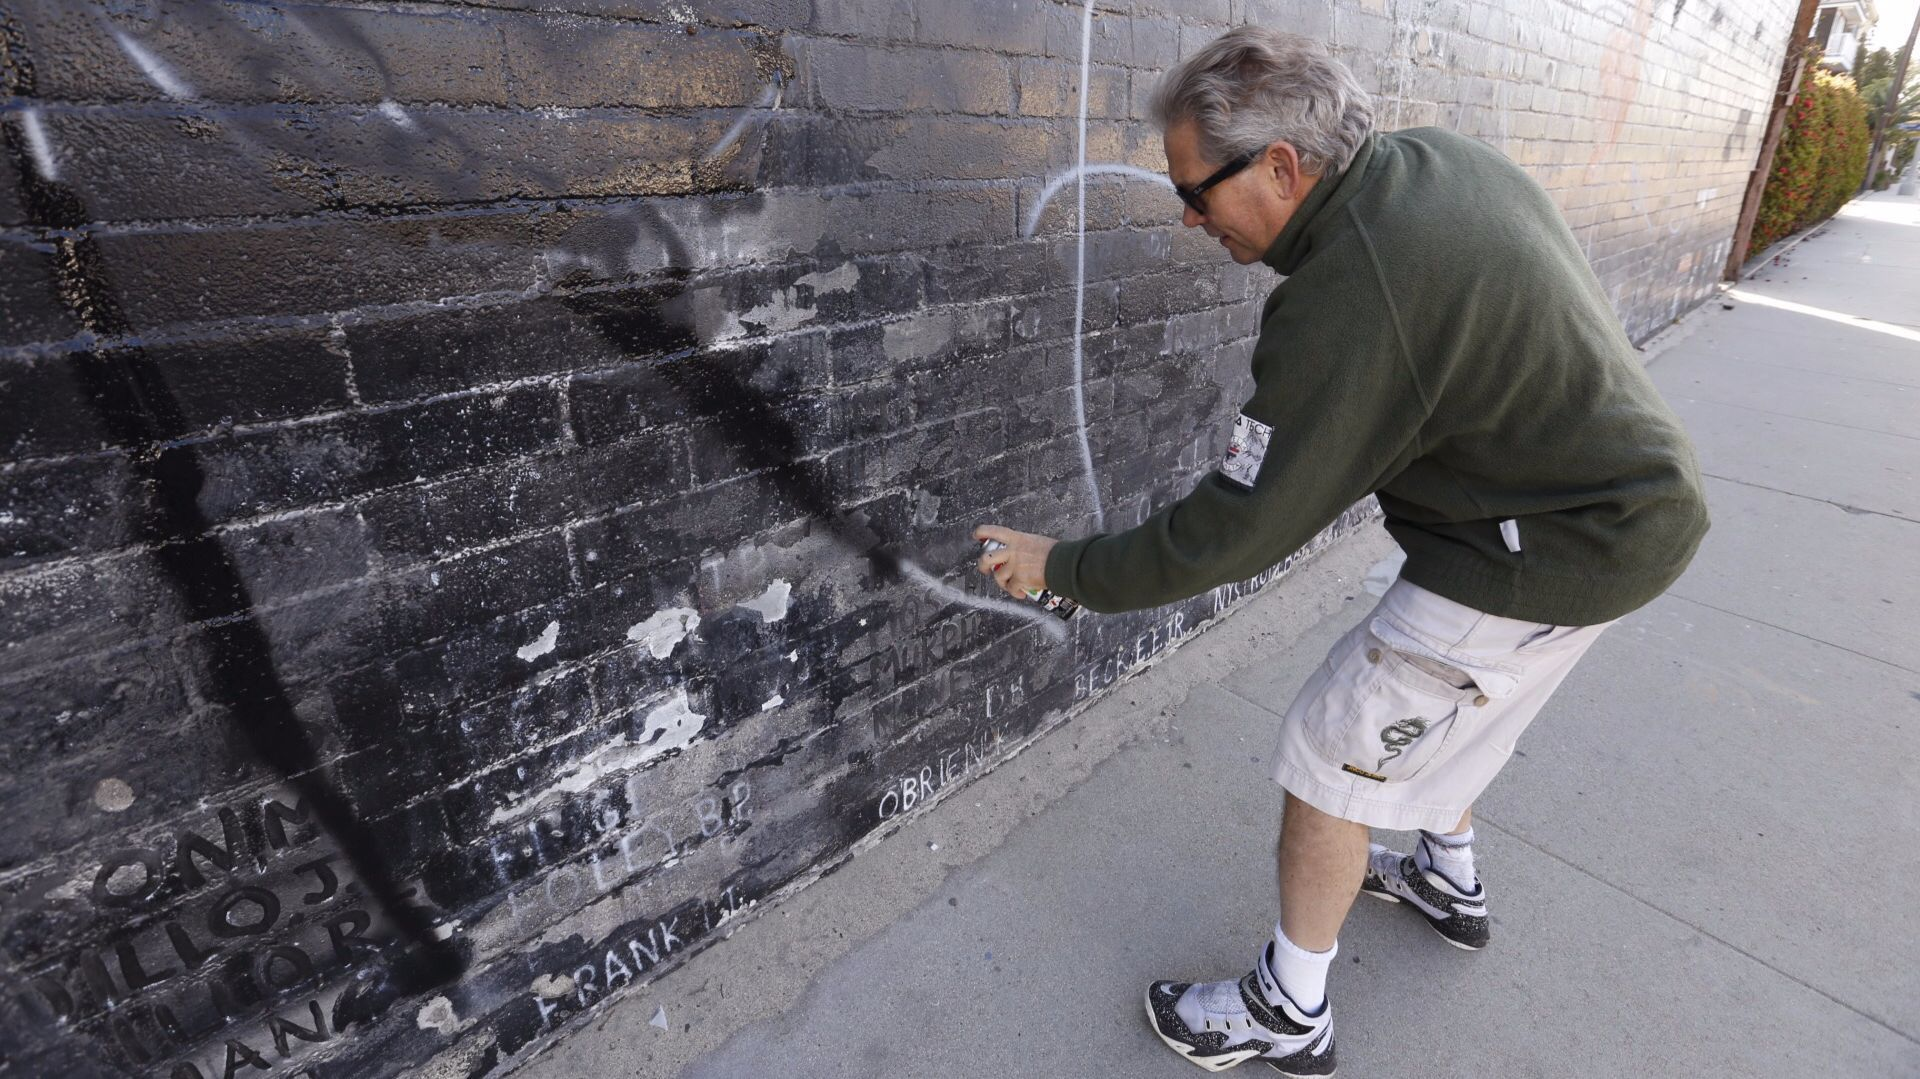 Steven Barber uses black spray paint to cover the white letters of graffiti on the wall.